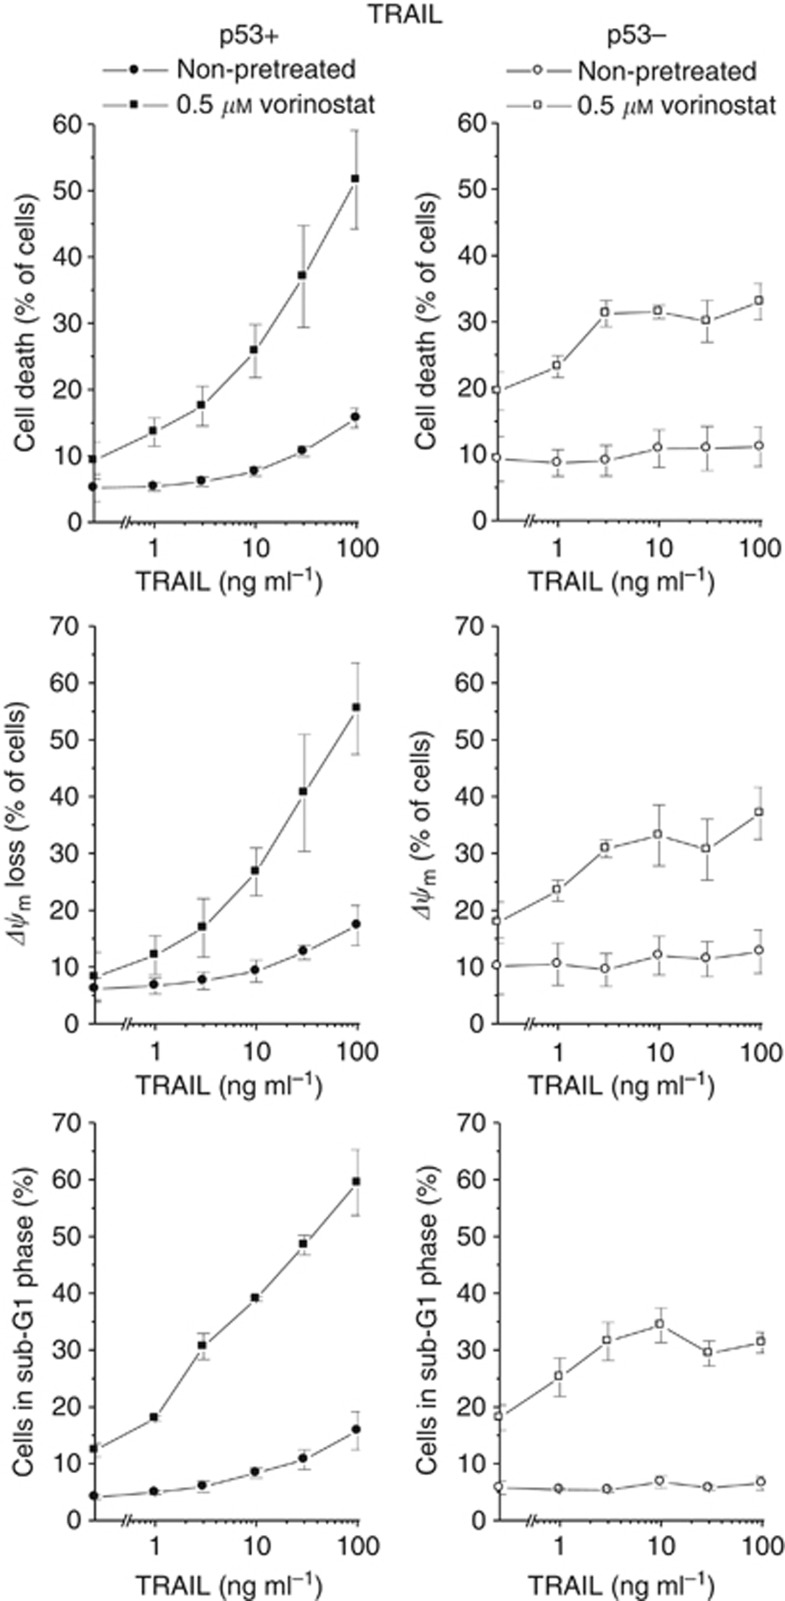 Antineoplastic effects of vorinostat in combination with TRAIL in HCT-116 p53+ and p53− cells. Four hours after administration of vorinostat, cells were exposed to TRAIL for 48 h. Cell death and Δ ψ m were determined by flow-cytometric analyses of PI uptake or DiOC 6 (3) staining, respectively. Cells in sub-G1 phase were determined by flow-cytometric cell-cycle analysis. Means ±s.e.m. of each three separate measurements are shown.